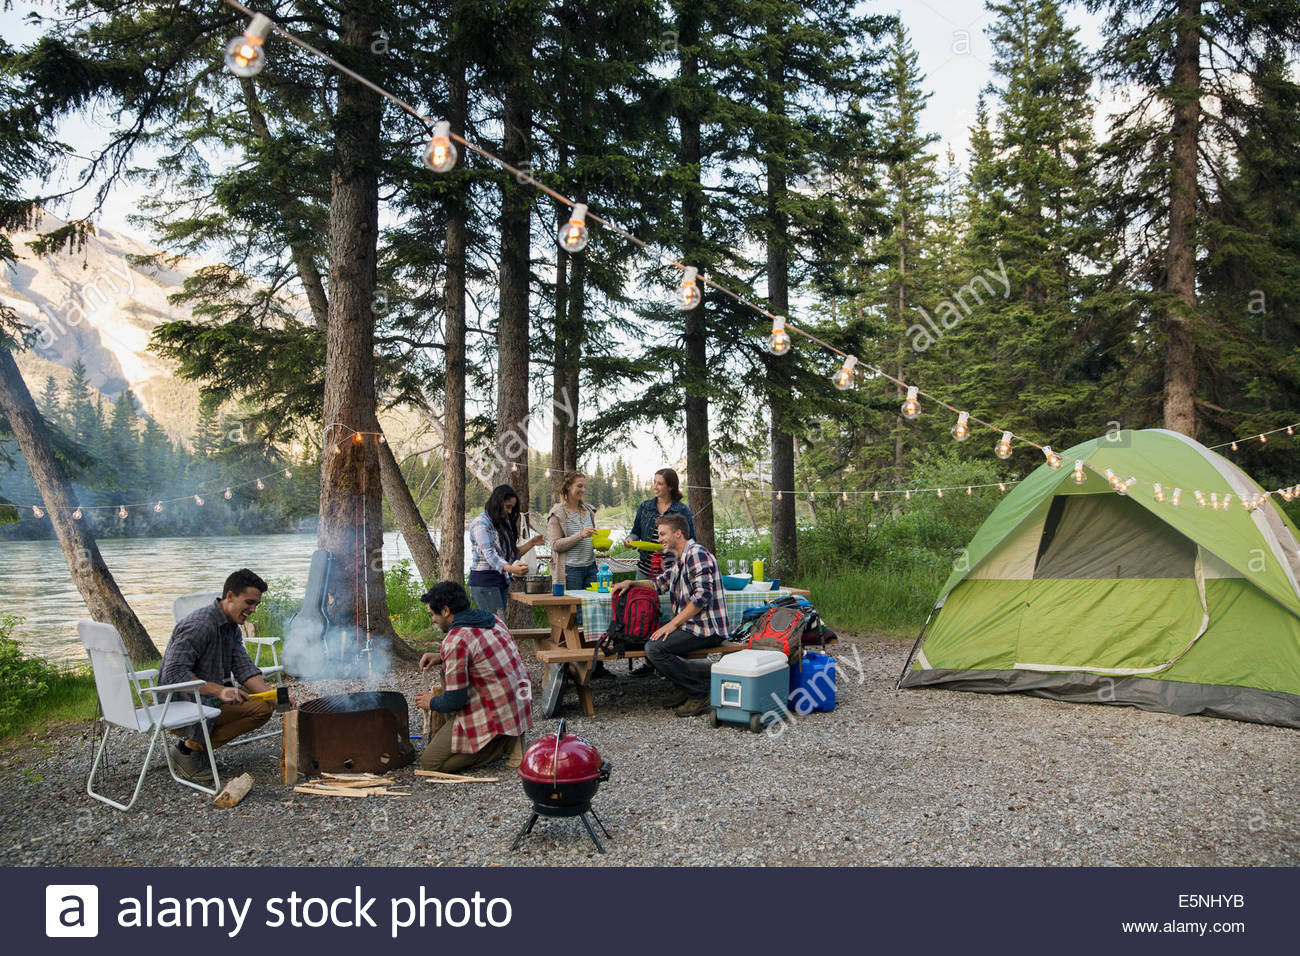 Friends hanging out at lakeside campsite - Stock Image